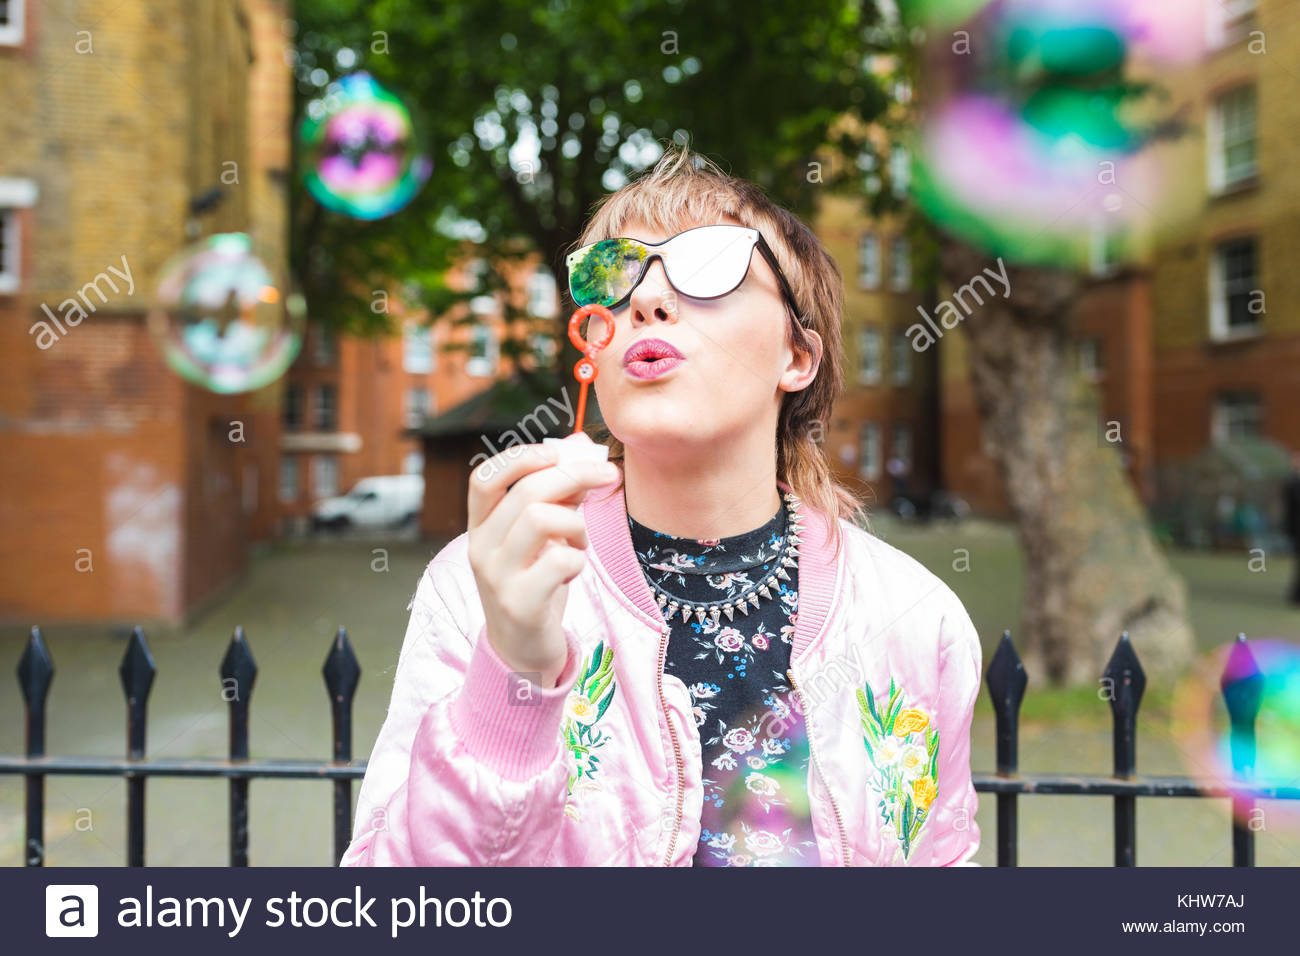 Retro styled young woman blowing bubbles - Stock Image